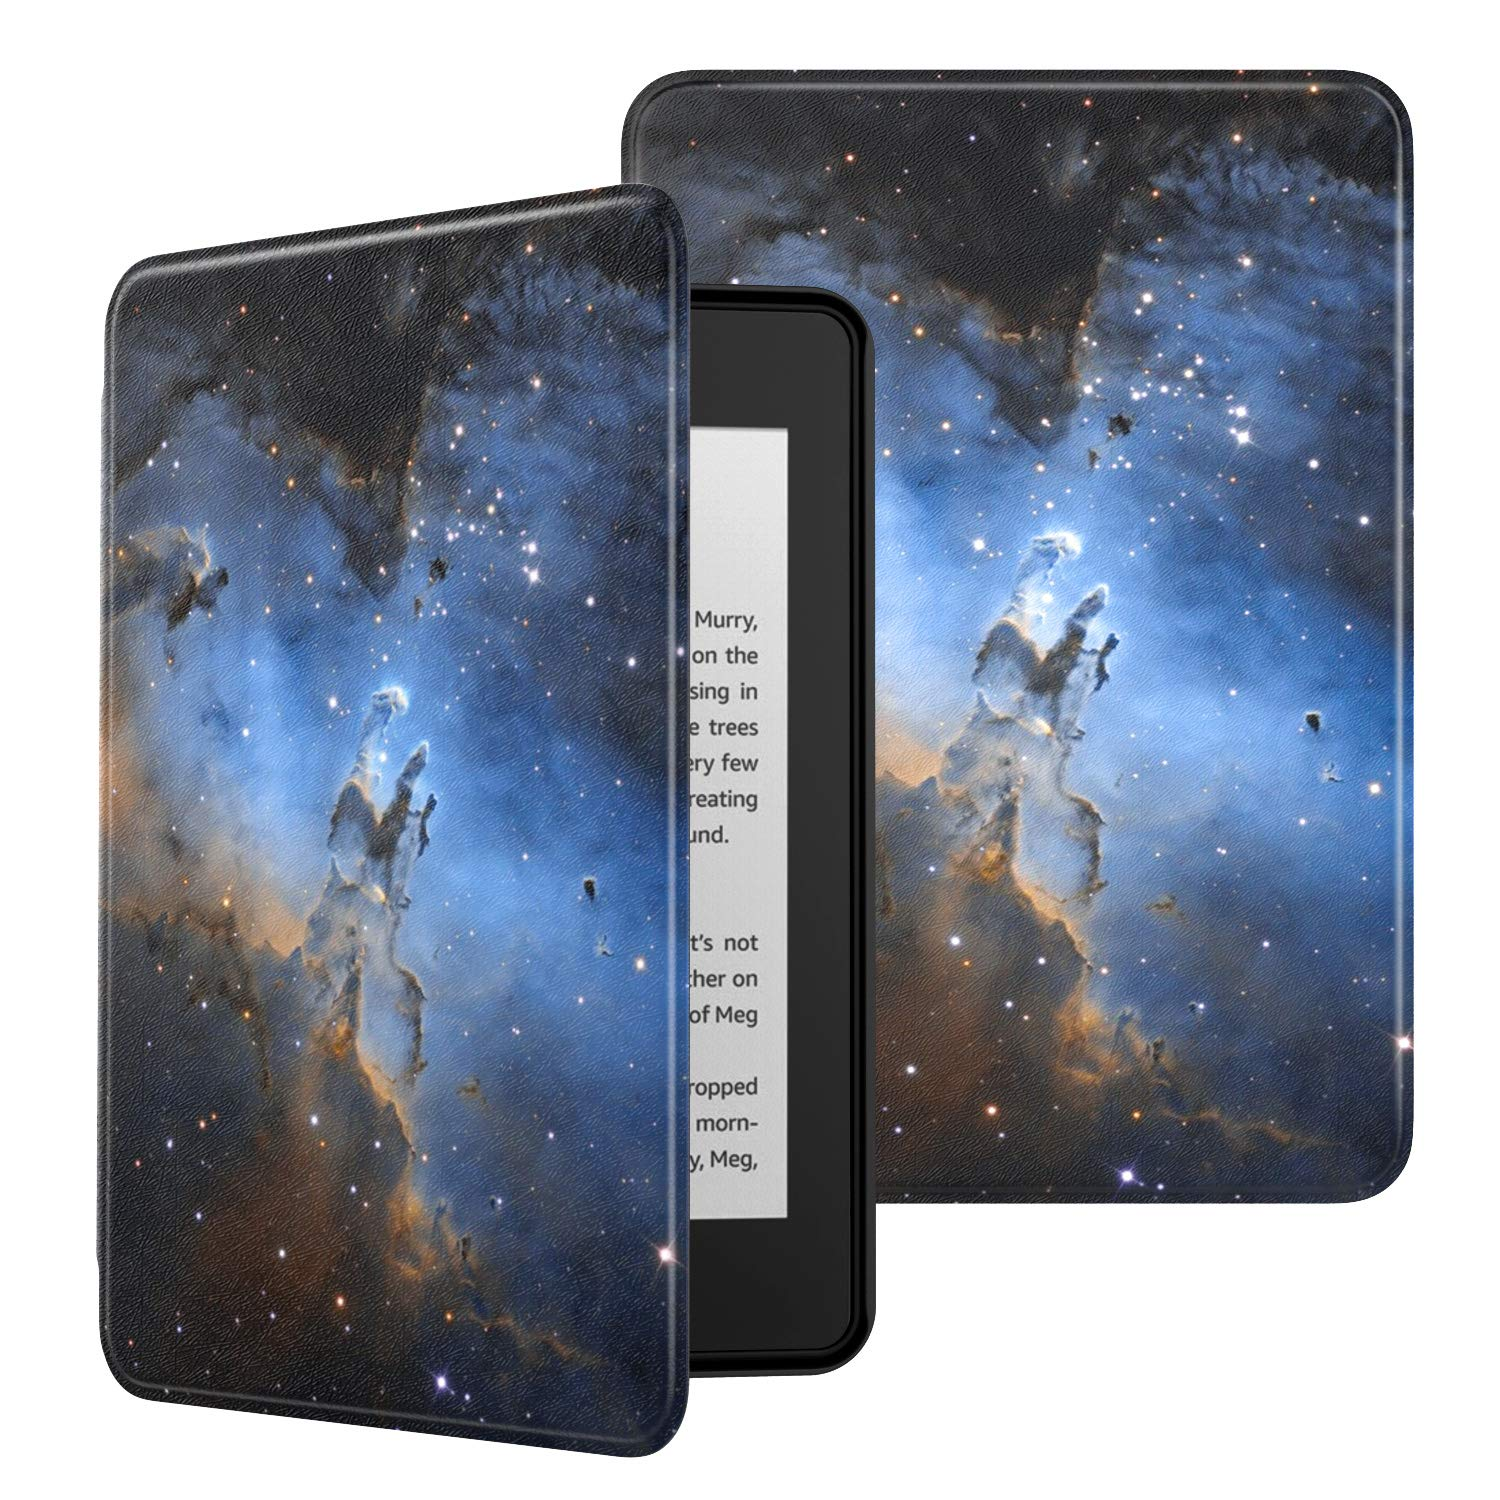 MoKo Case Fits Kindle Paperwhite (10th Generation, 2018 Releases), Premium Ultra Lightweight Shell Cover with Auto Wake/Sleep for Kindle Paperwhite 2018 E-Reader - Pillars of Creation Distant View